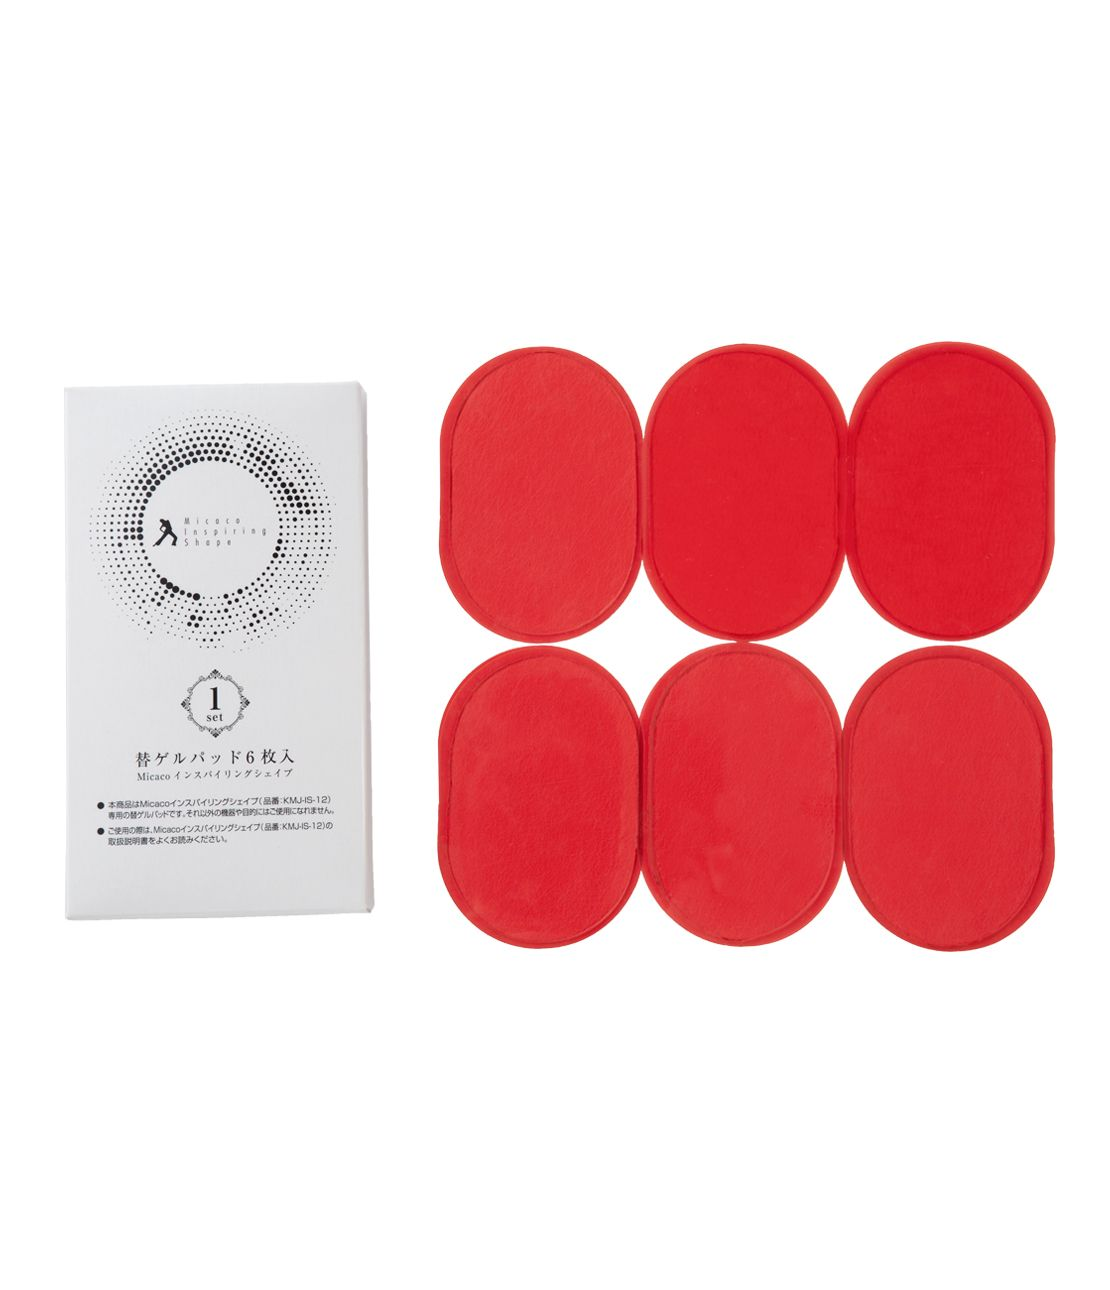 Micaco replacement gel pad (6 Disc)